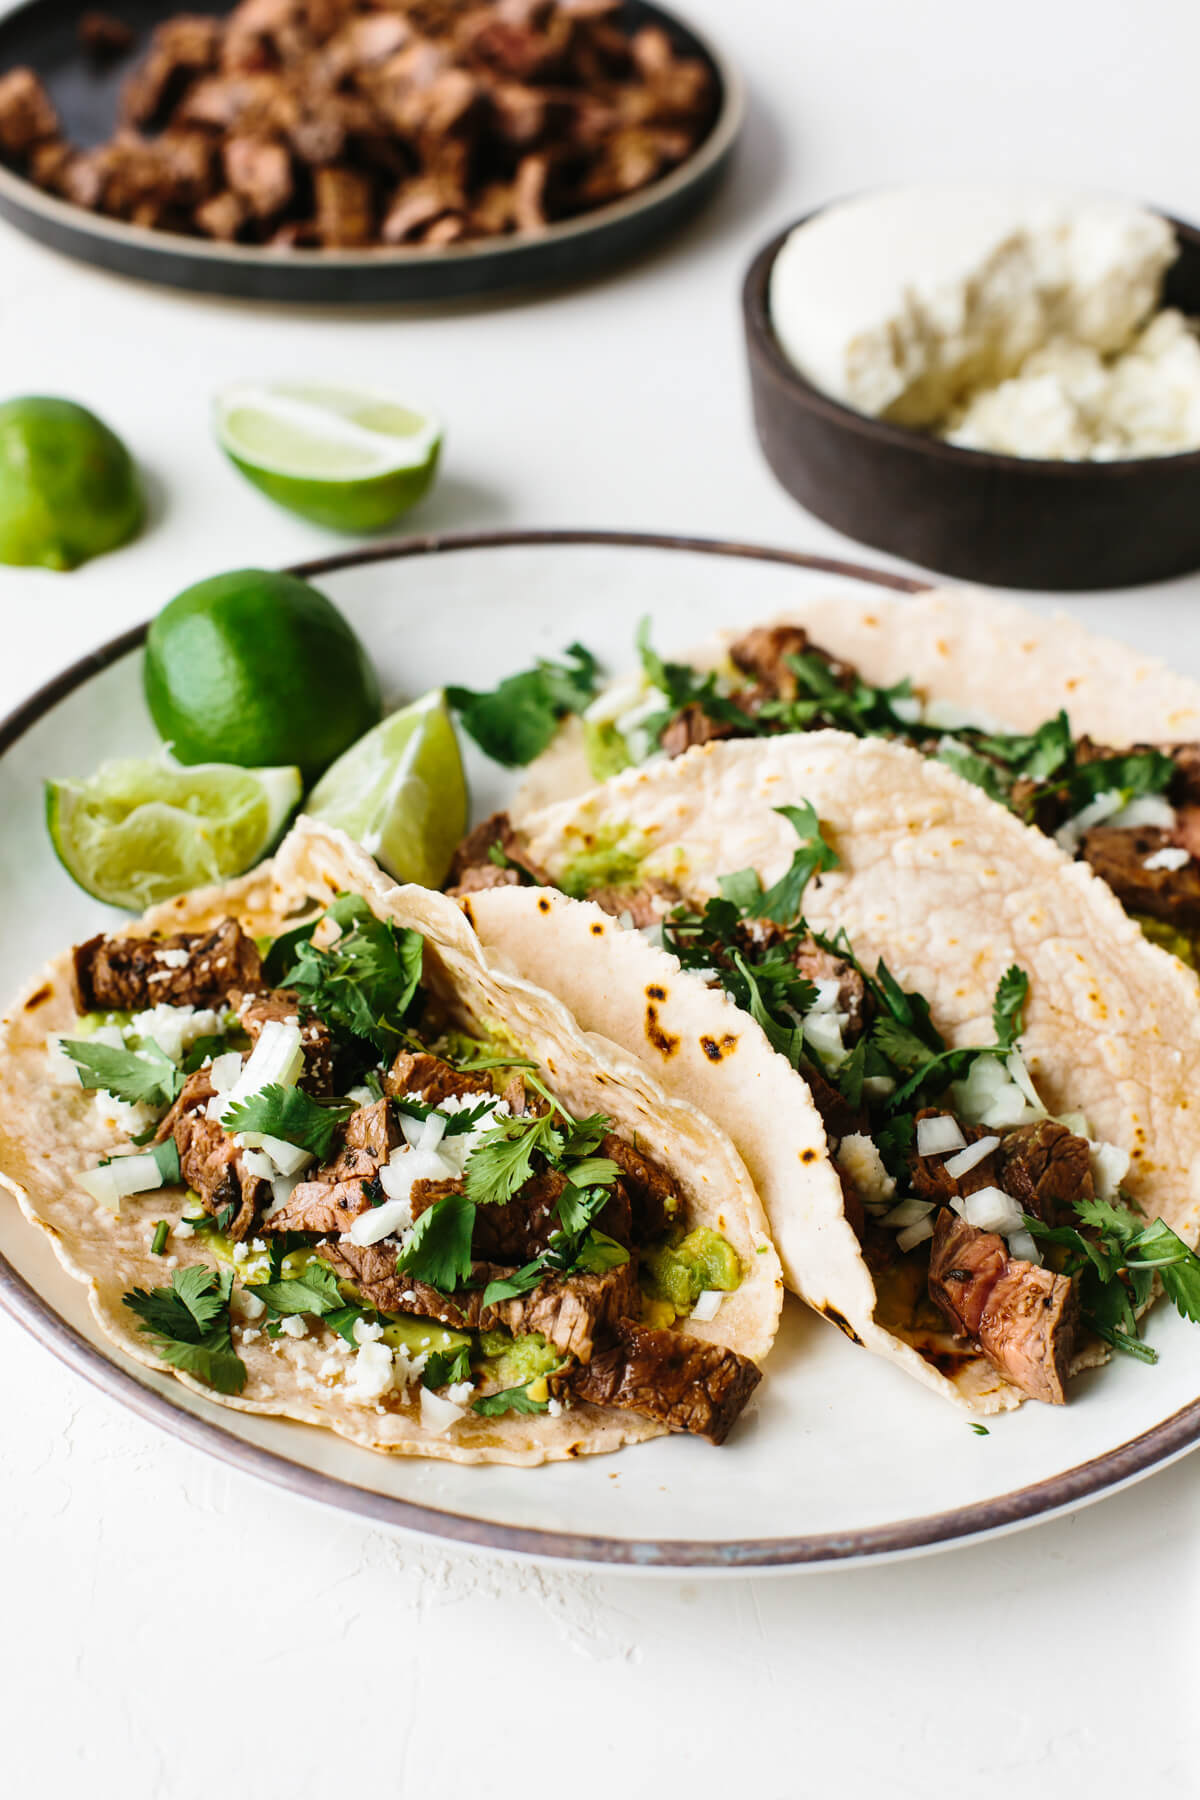 A plate with carne asada tacos next to limes.